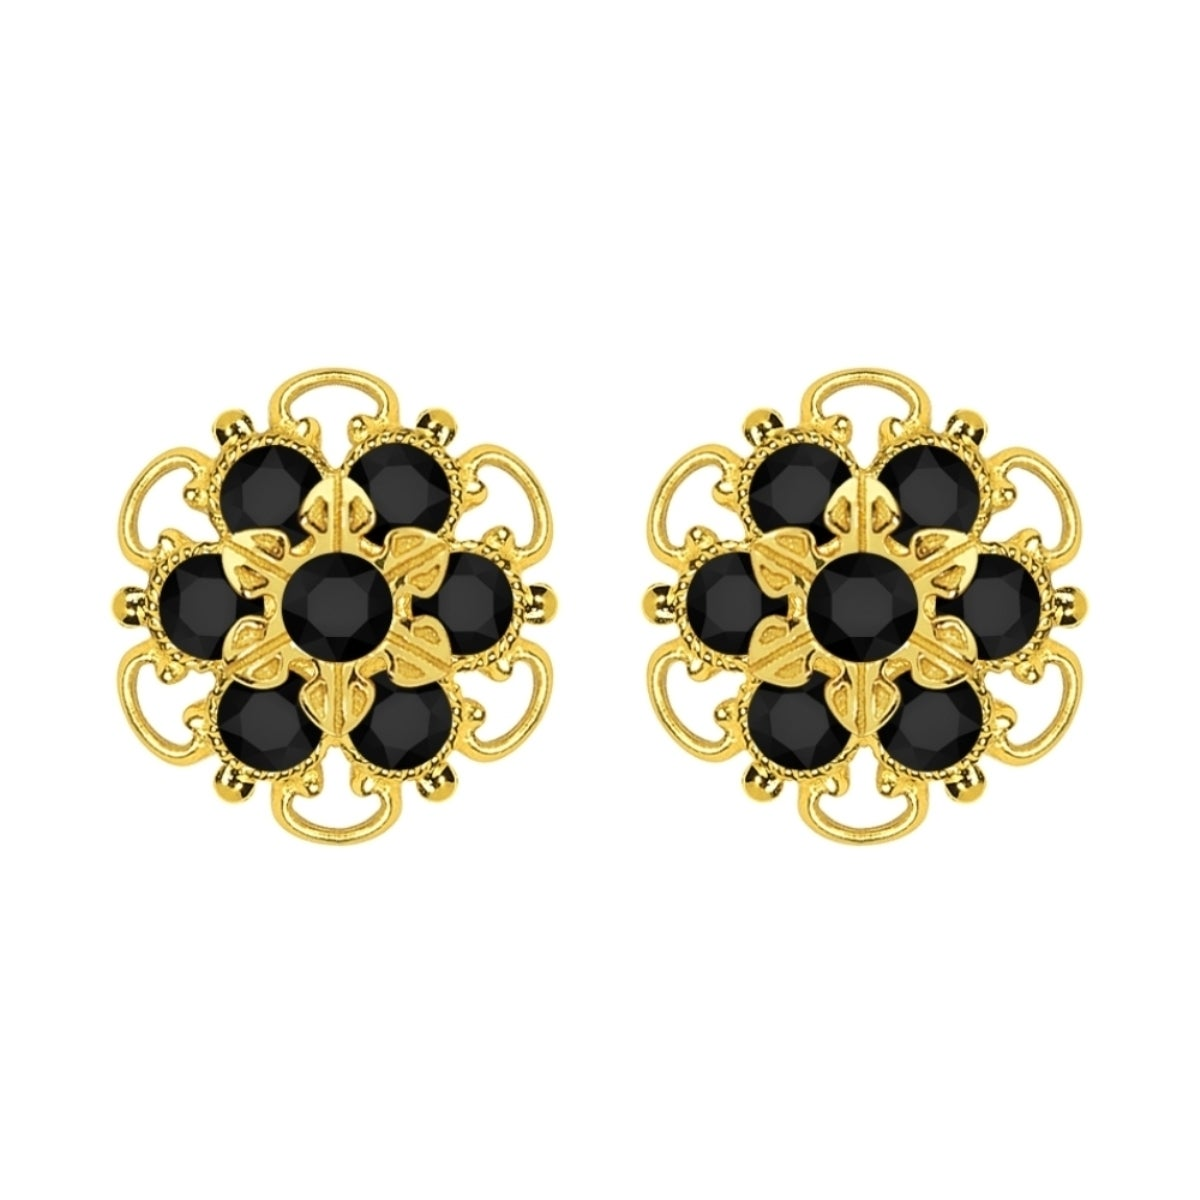 flower v new crystal for earrings black color a sonao jewelry fashion vintage stud cz women stones earring gold big net